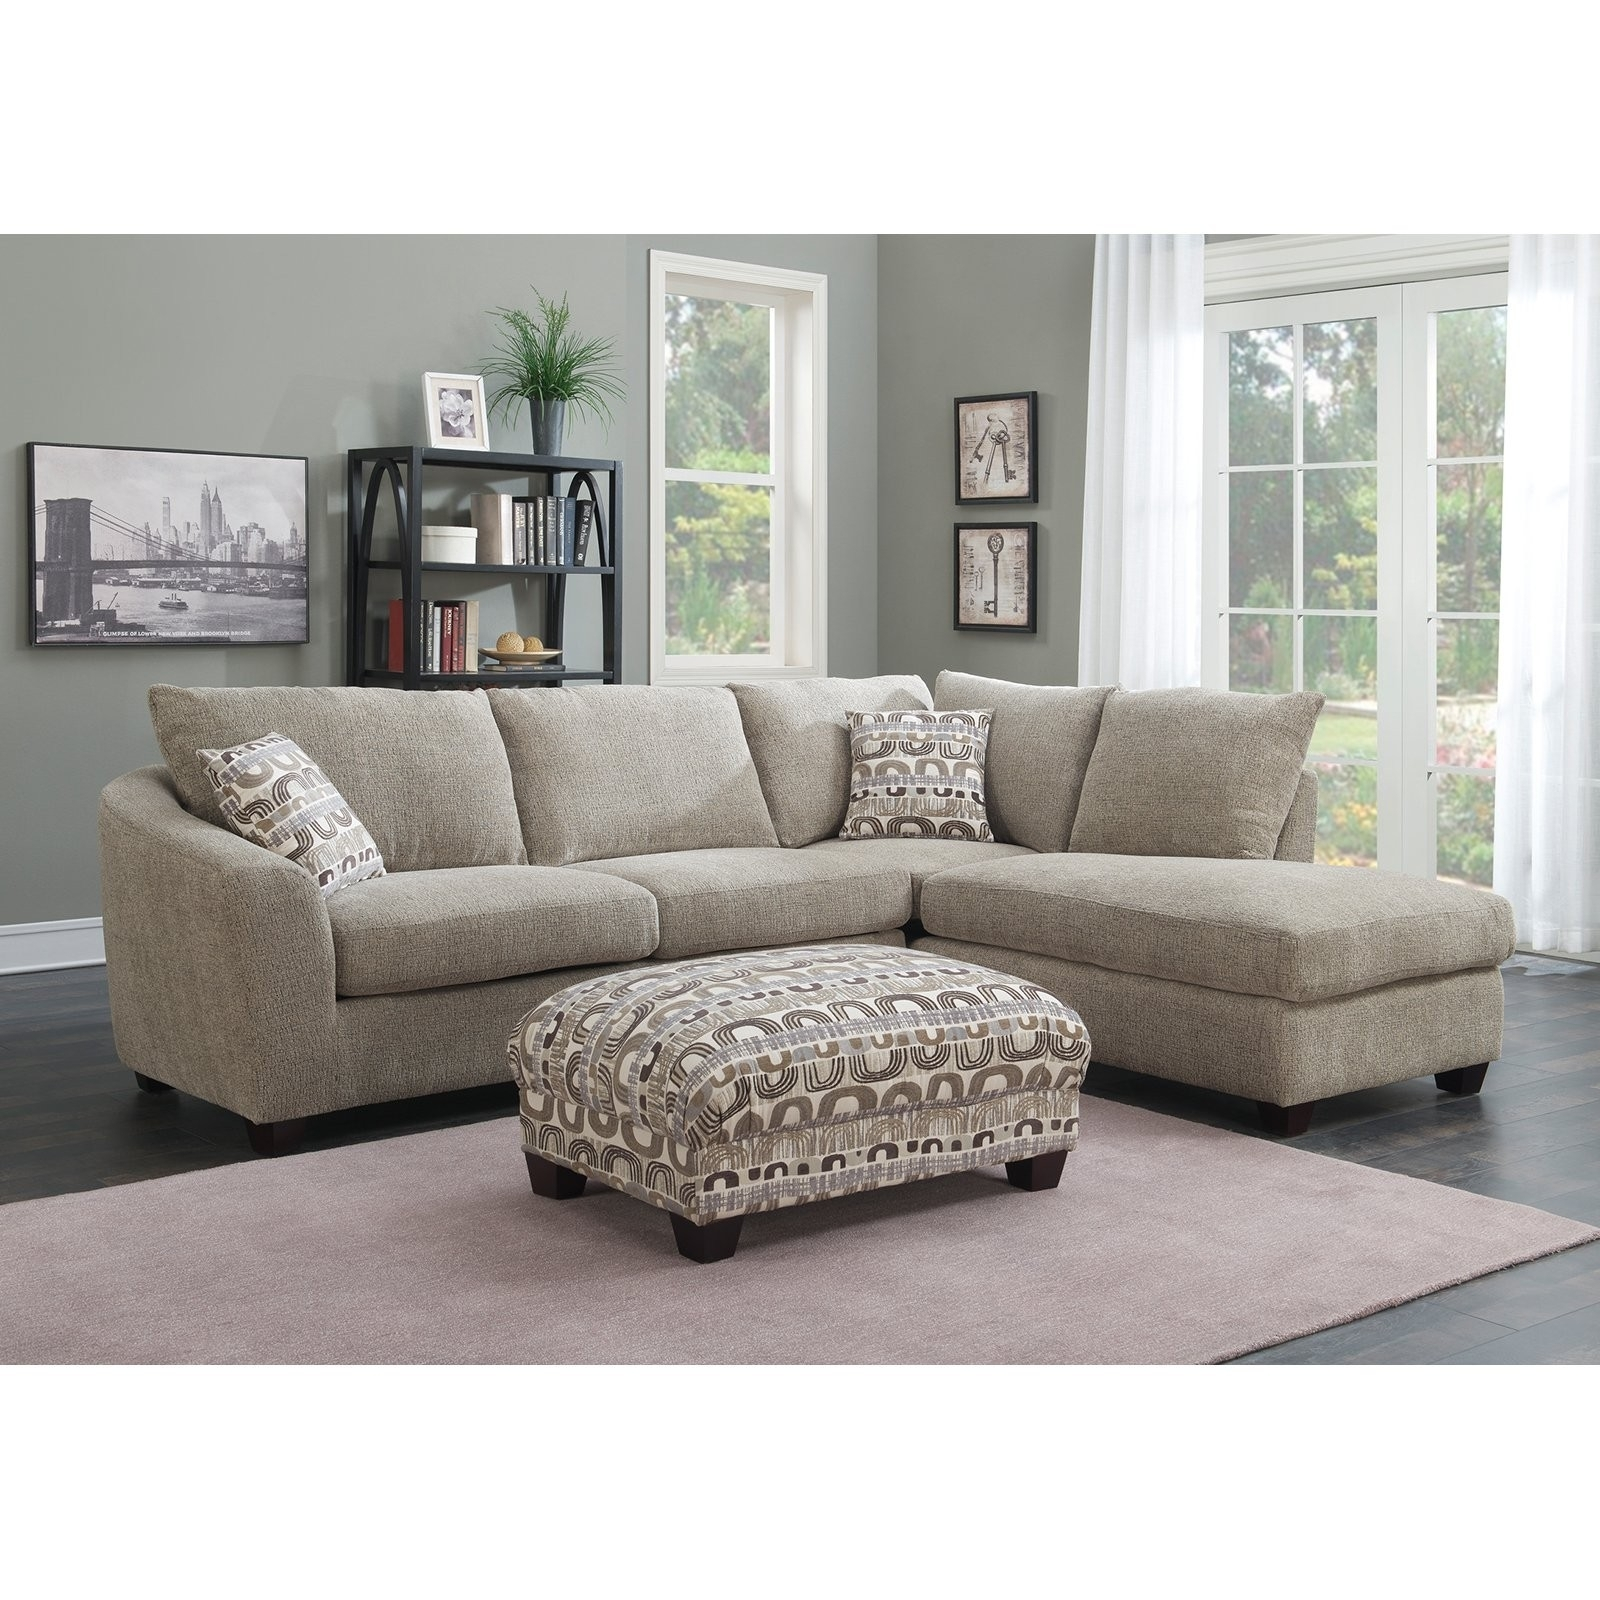 2 Piece Sectional With Chaise Urban Small West Elm C Throughout Avery 2 Piece Sectionals With Raf Armless Chaise (Gallery 21 of 30)